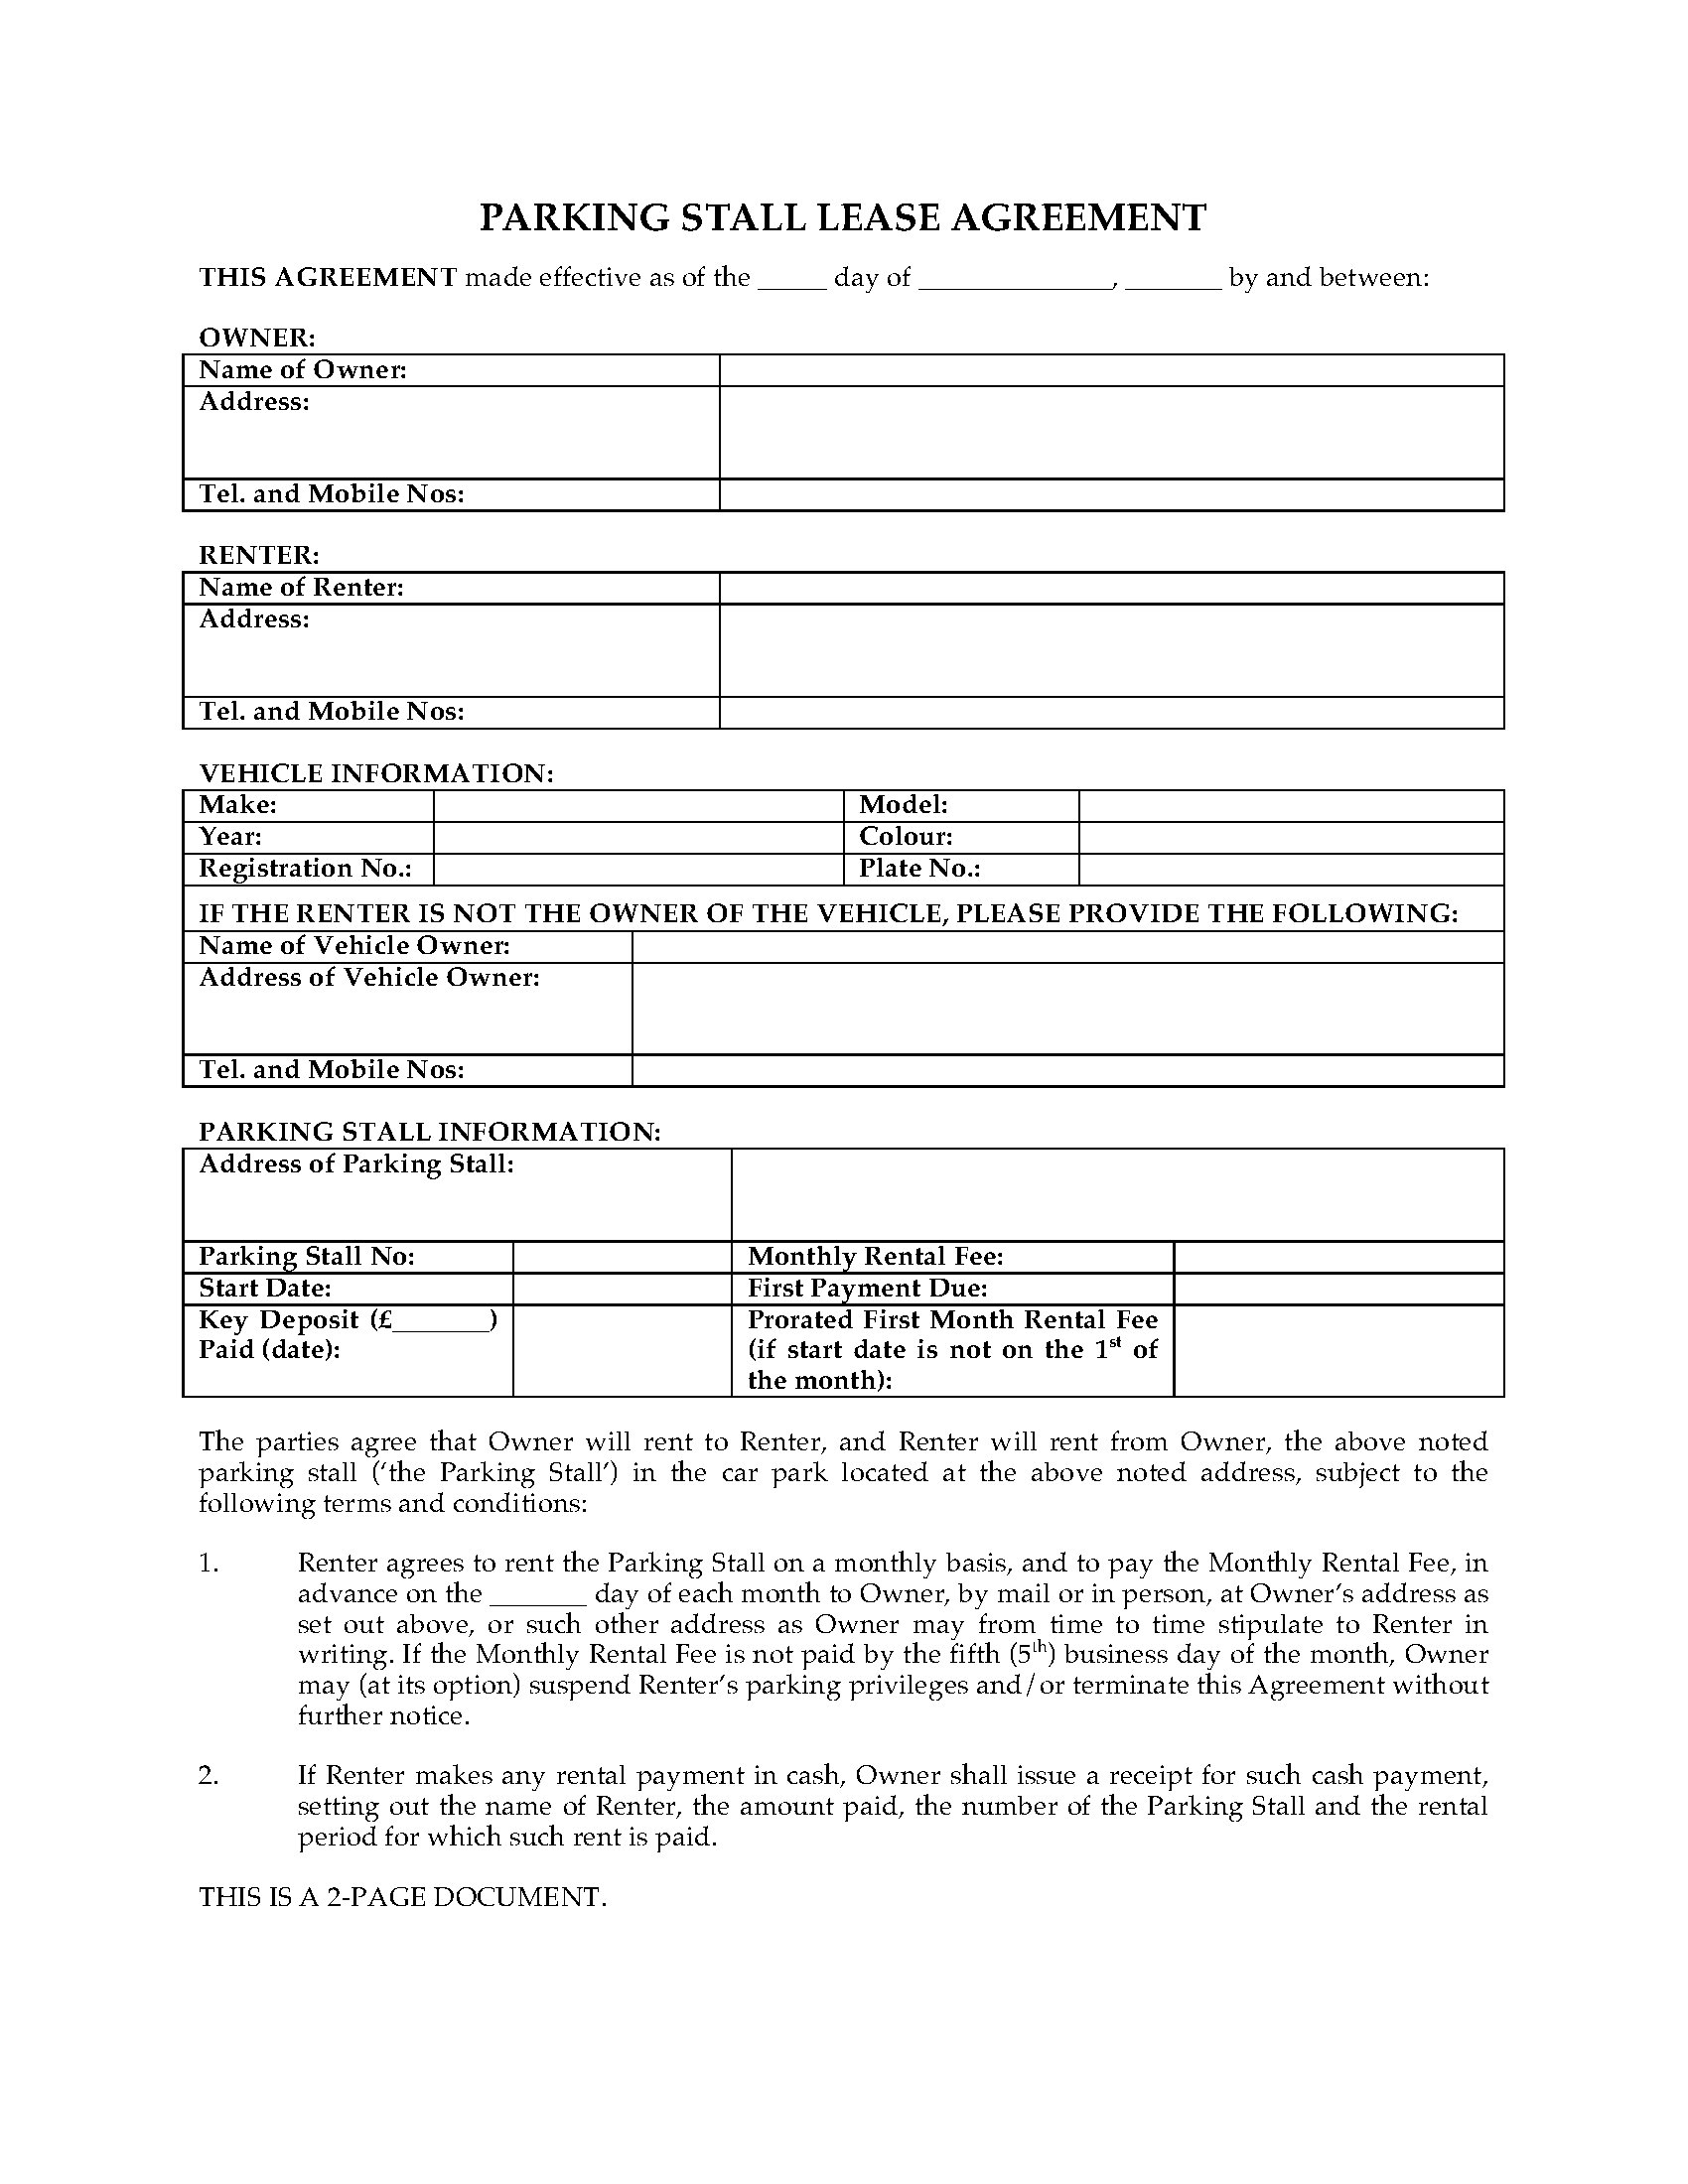 003 Exceptional Car Lease Agreement Template High Definition  Vehicle Ontario Rental Singapore LeasingFull